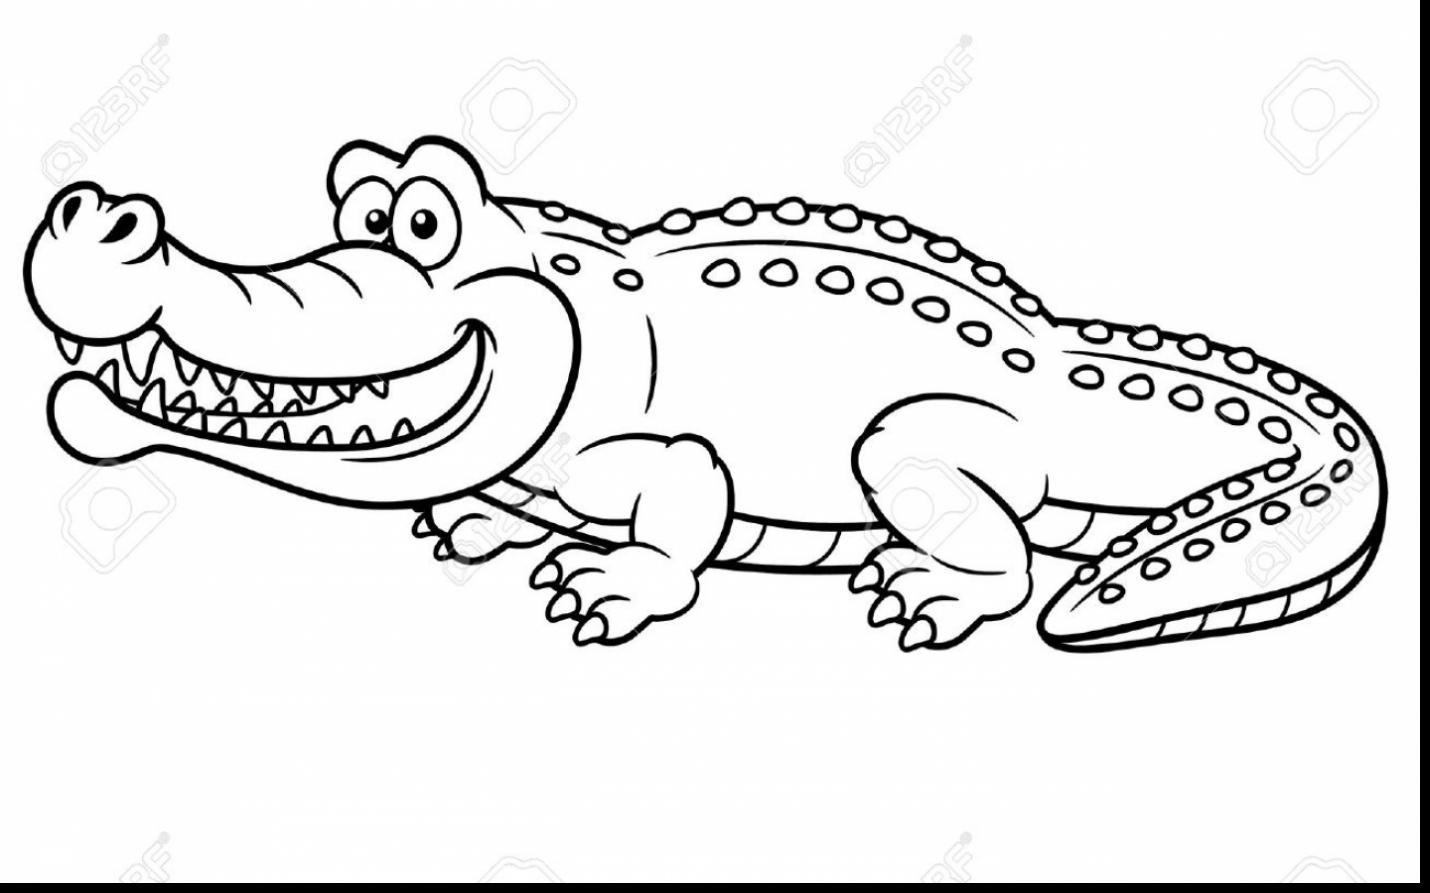 1430x893 Unparalleled Alligator Coloring Pages Good 71 In For Kids Online